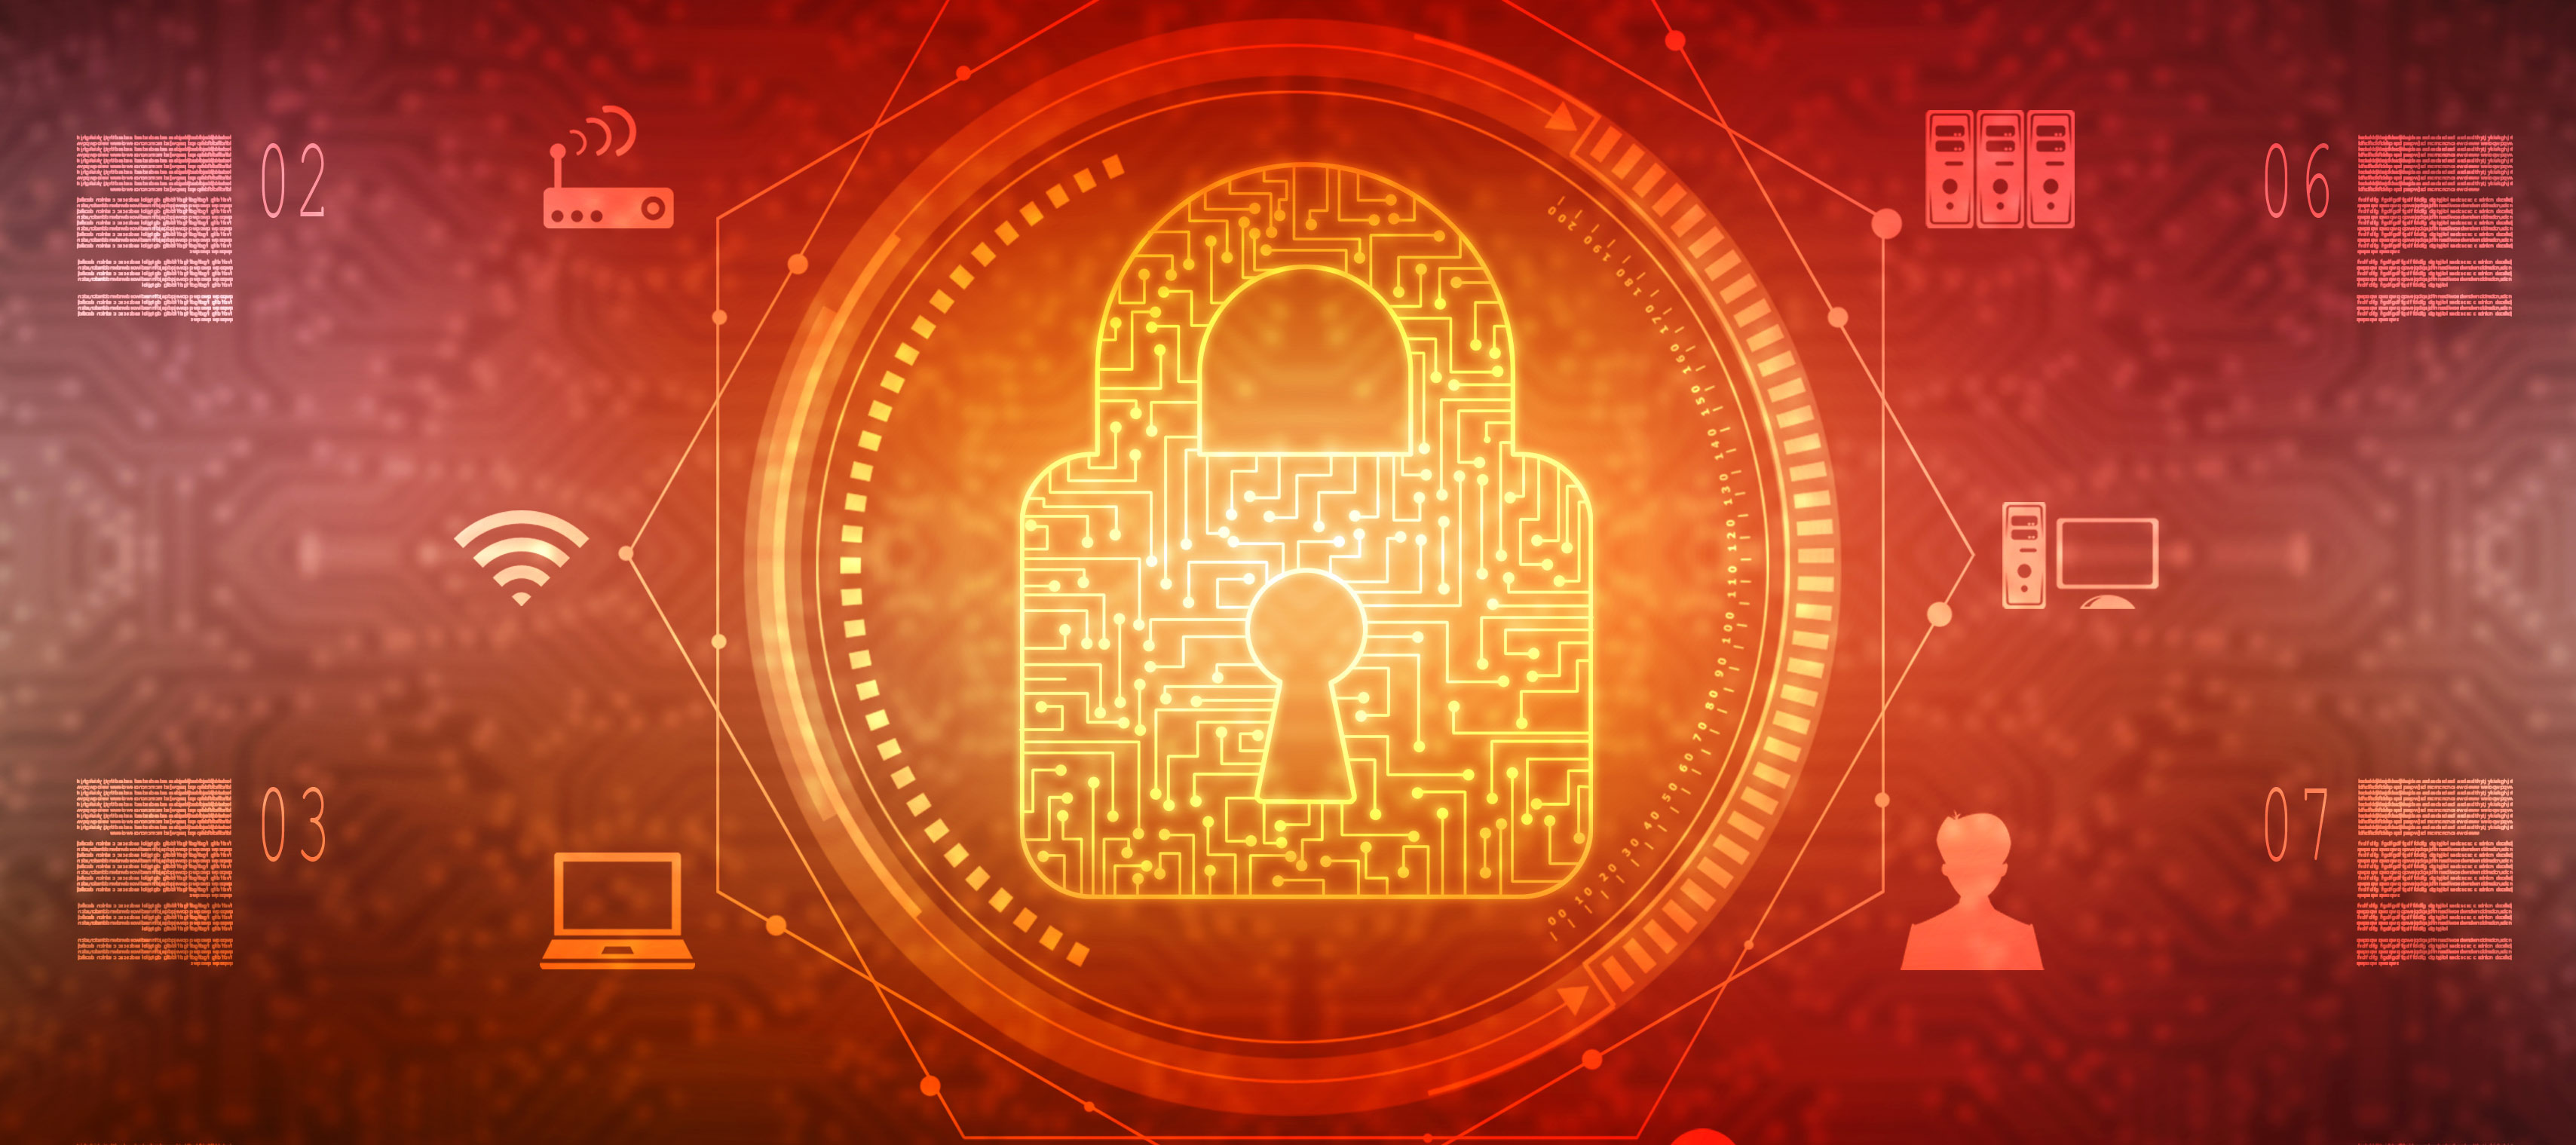 AS/400 Disk Encryption | HelpSystems